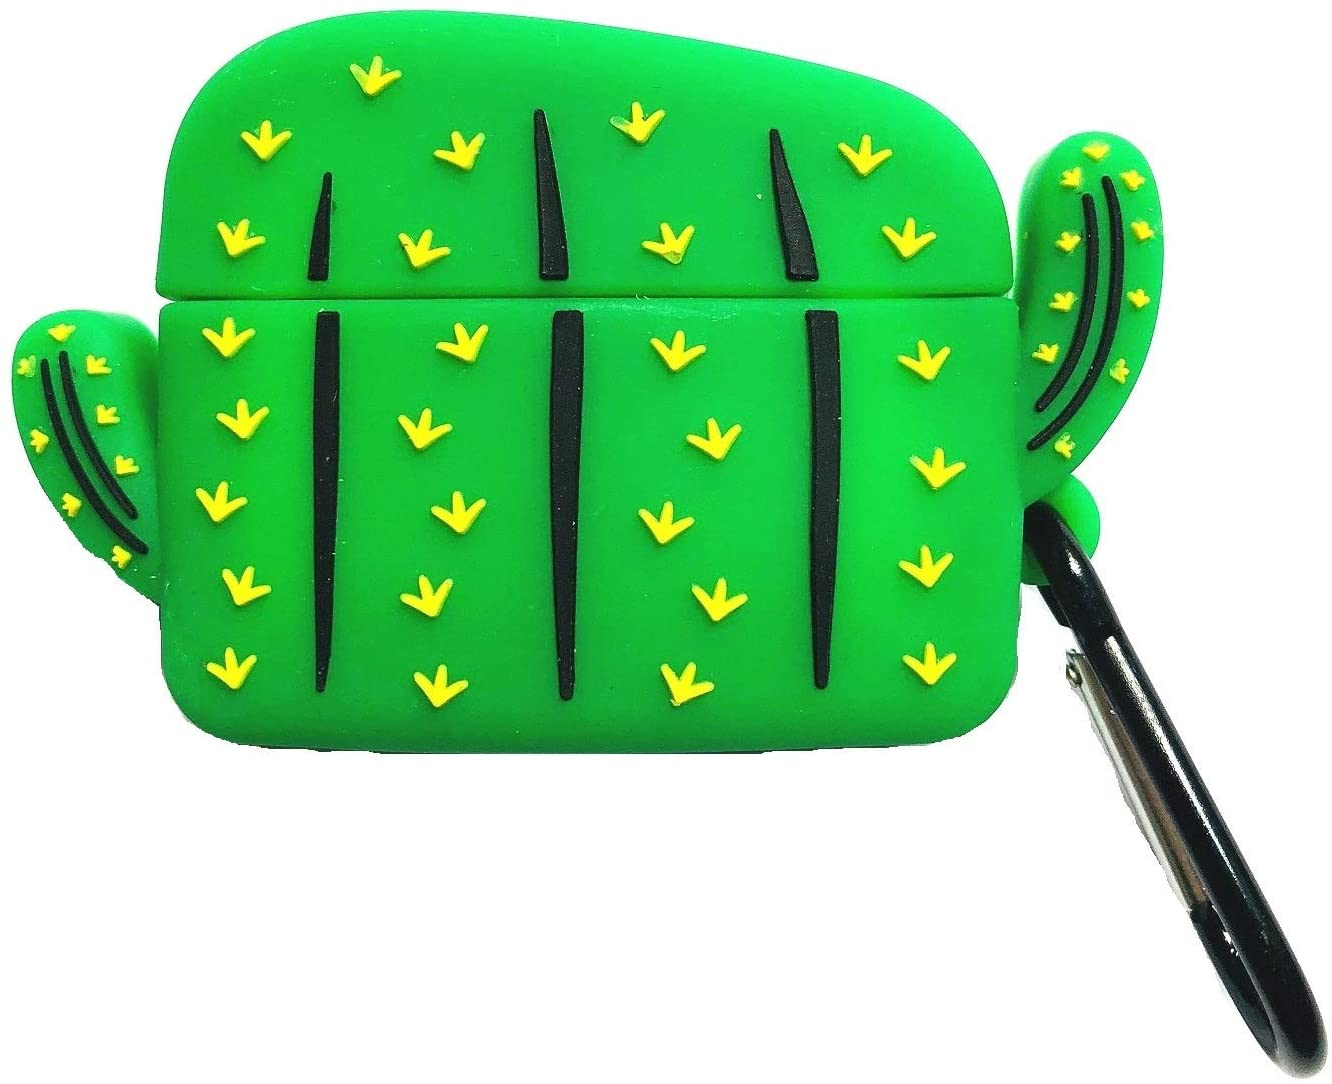 AirPods Pro Case, Cute Cactus Design Silicone Case for AirPods Pro, Shockproof Protective AirPods Pro Case Cover with Keychain